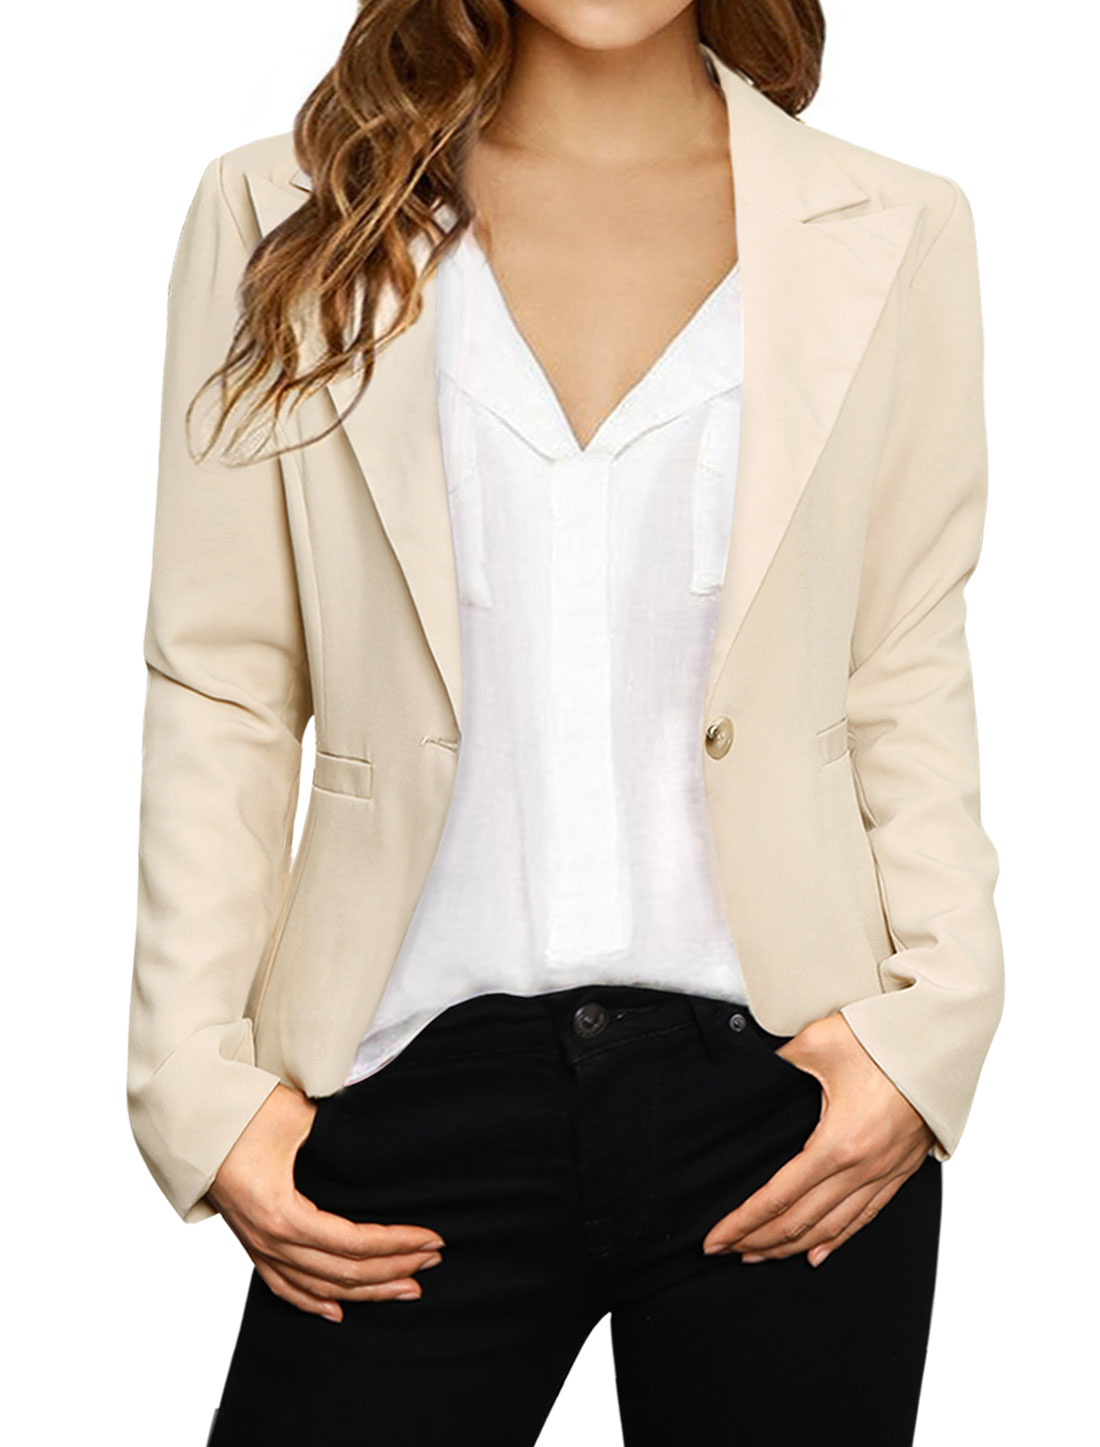 Women Peaked Lapel One-Button Elbow-Patch Blazer Beige XS